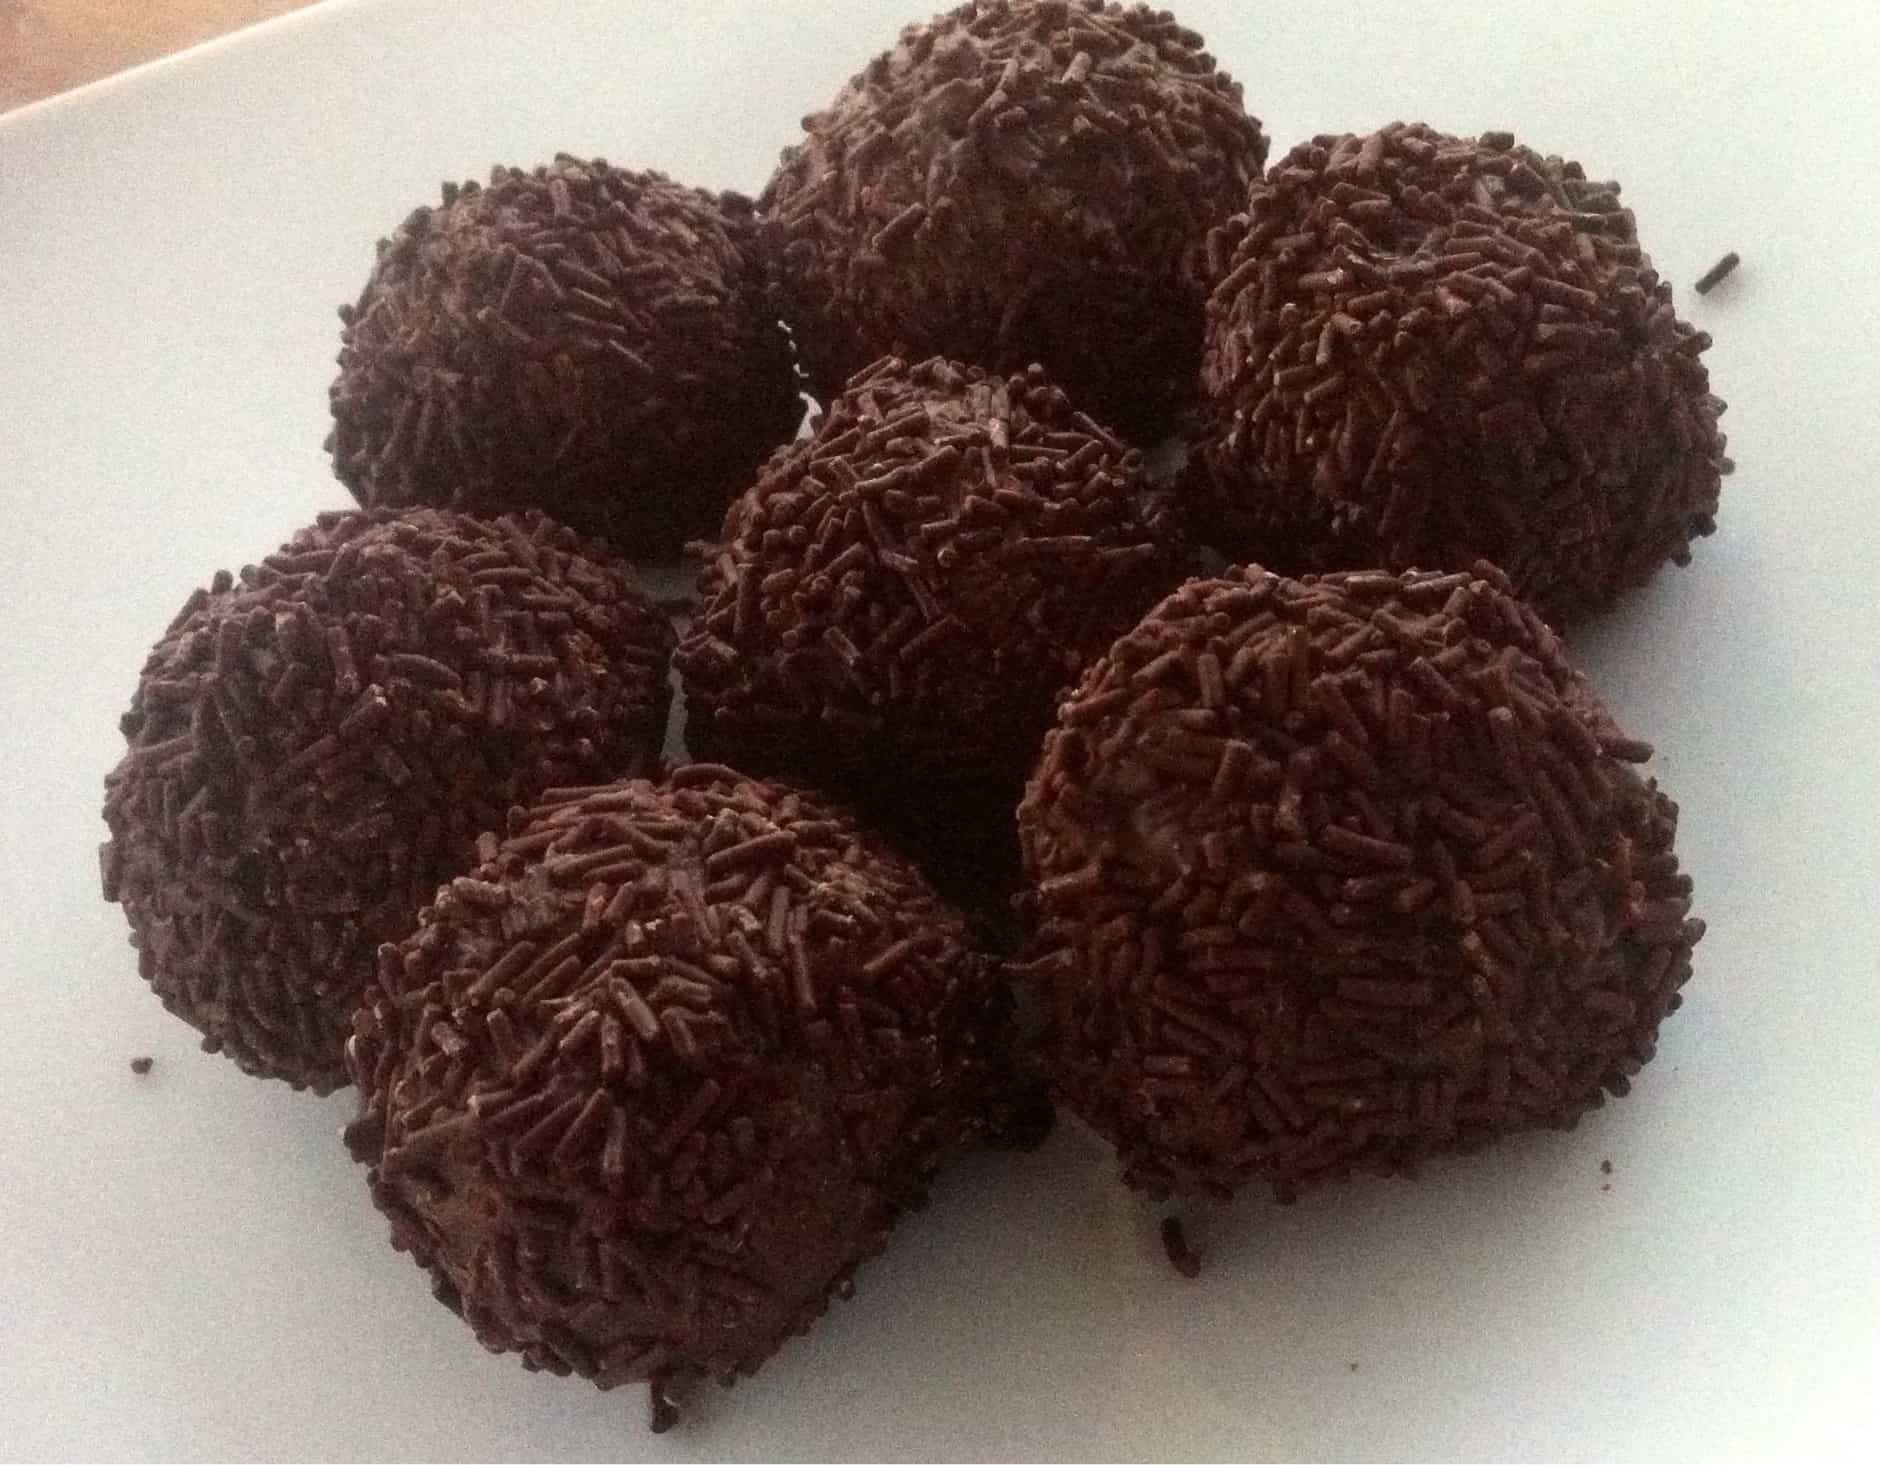 Chocolate Truffles Greek chocolate truffles